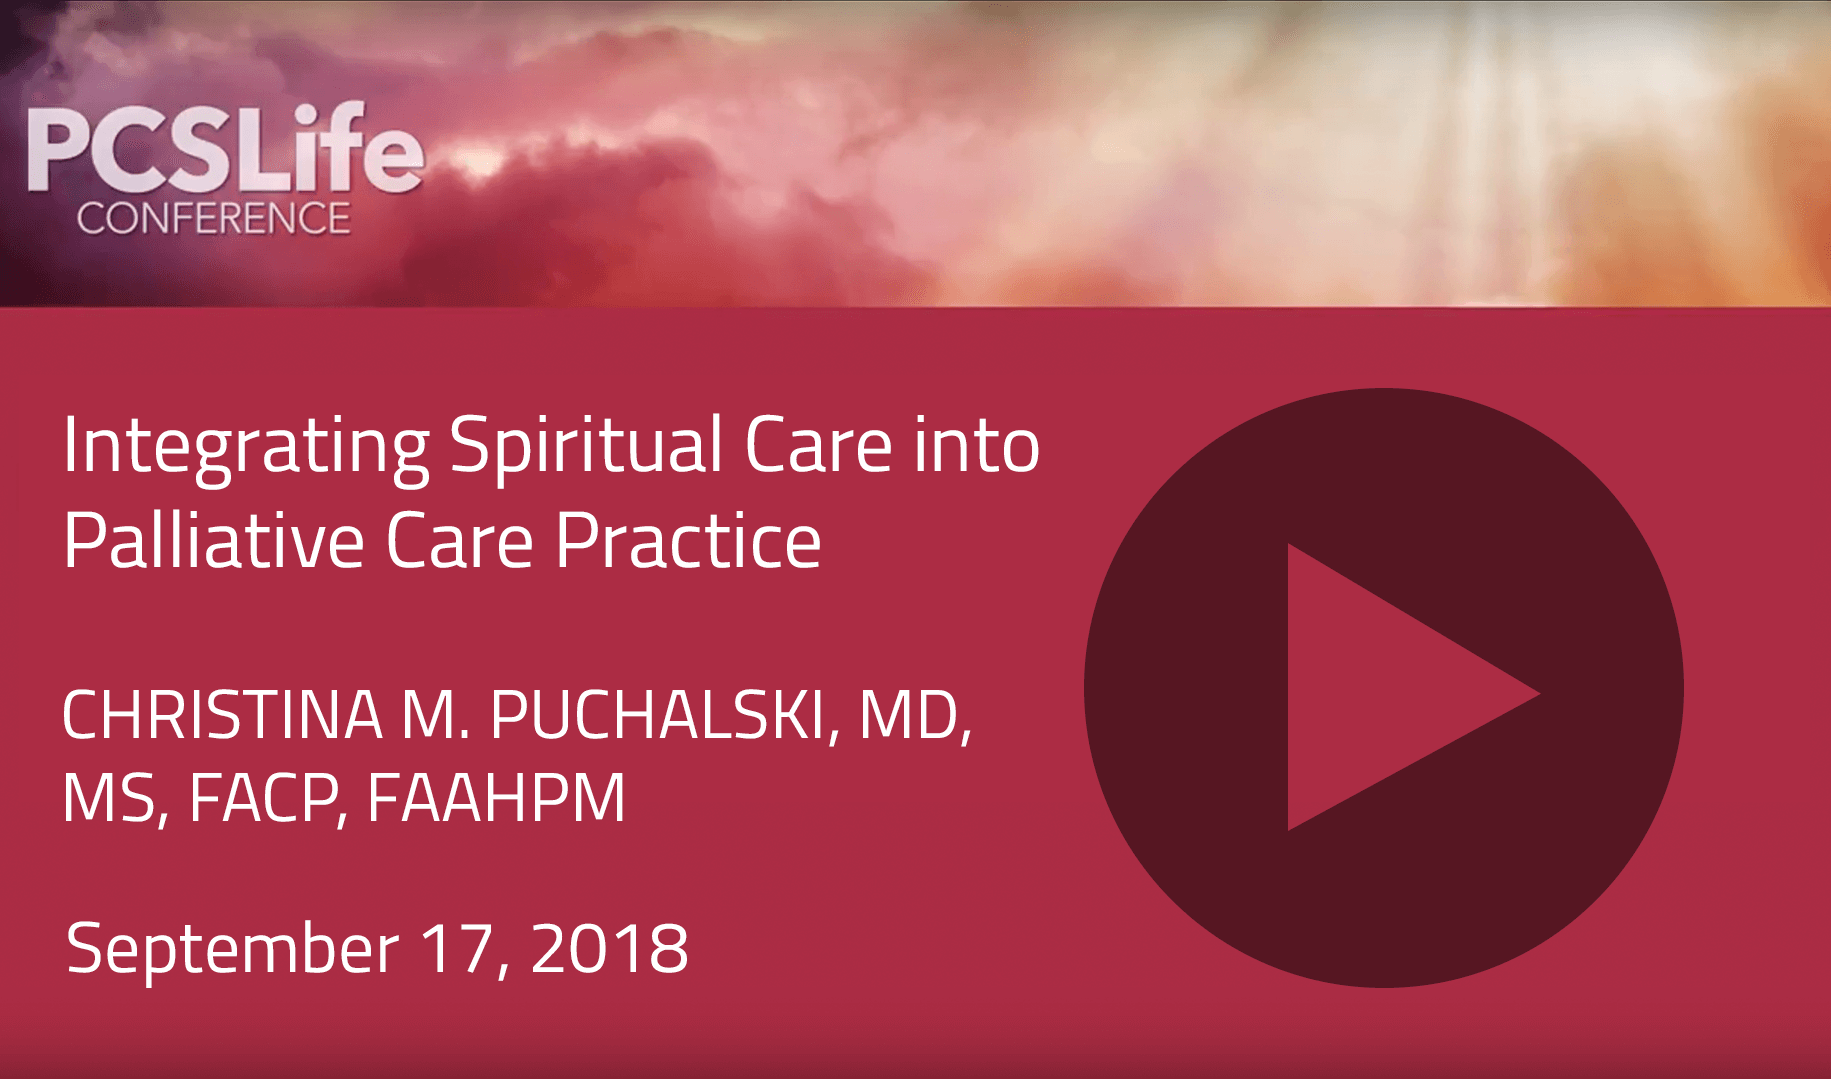 Integrating Spiritual Care into Palliative Care Practice by Christina M. Puchalski